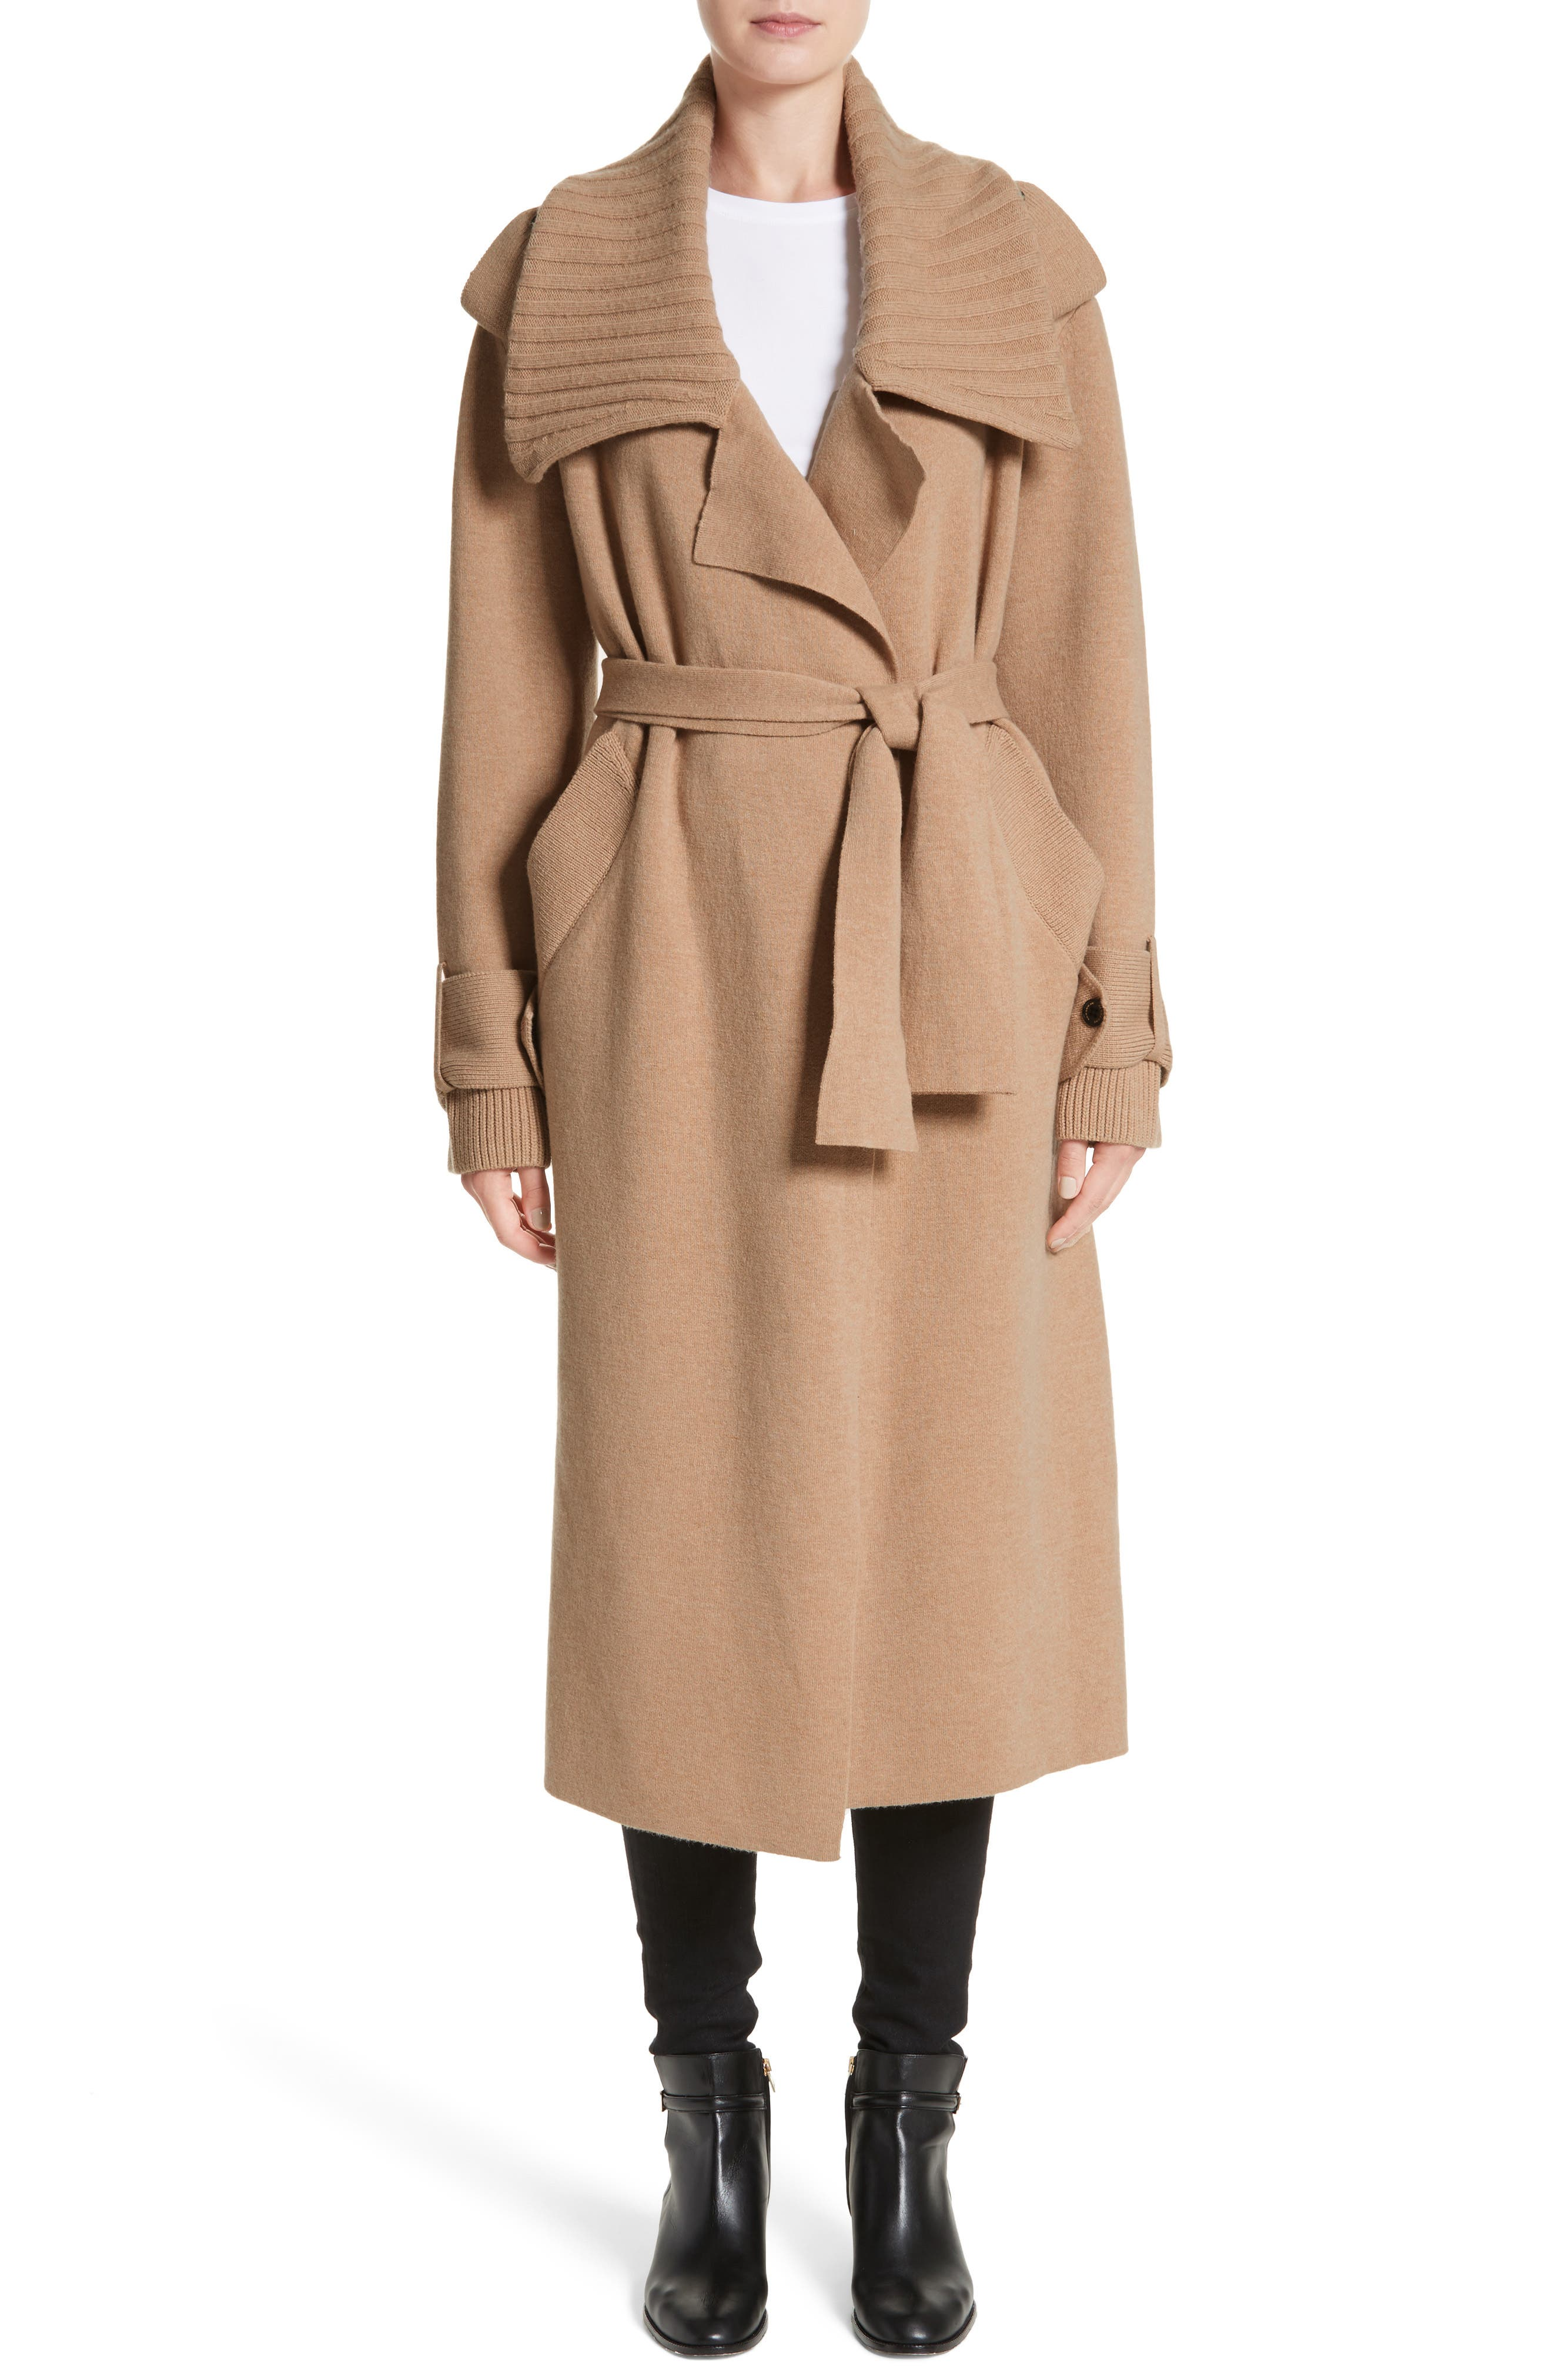 BURBERRY Piota Wool Blend Knit Trench Coat, Main, color, CAMEL